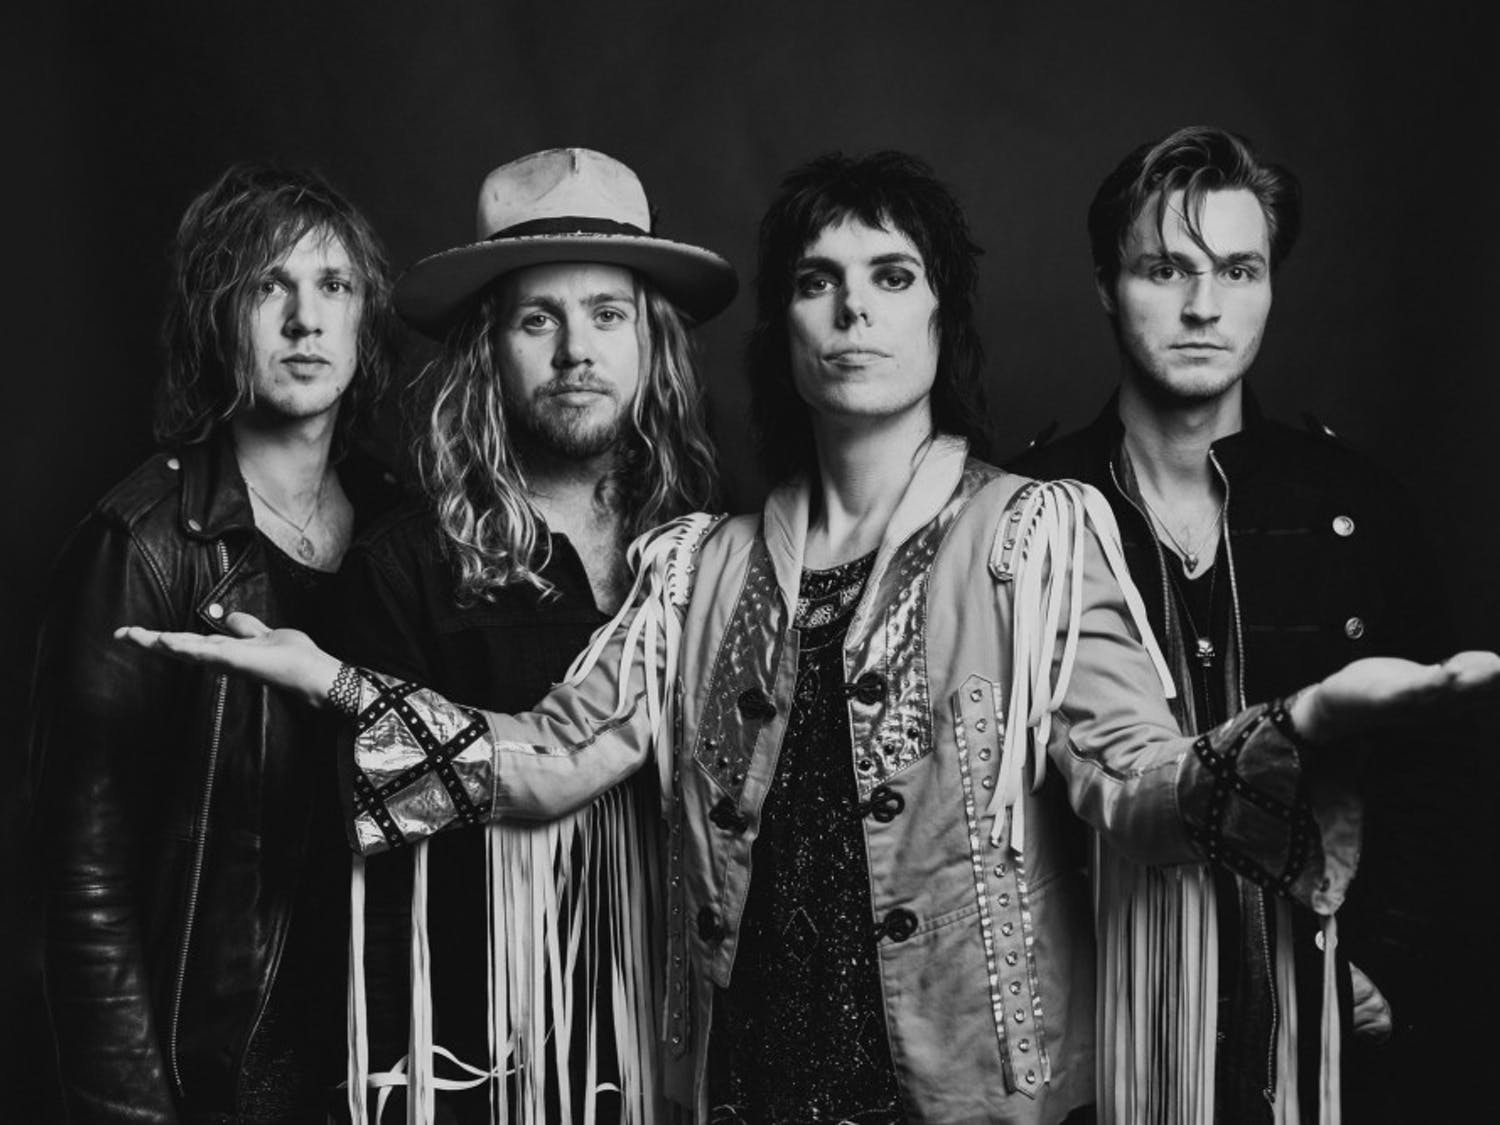 The Struts vocalist Luke Spiller spoke with us before his band's Canalside show this week.